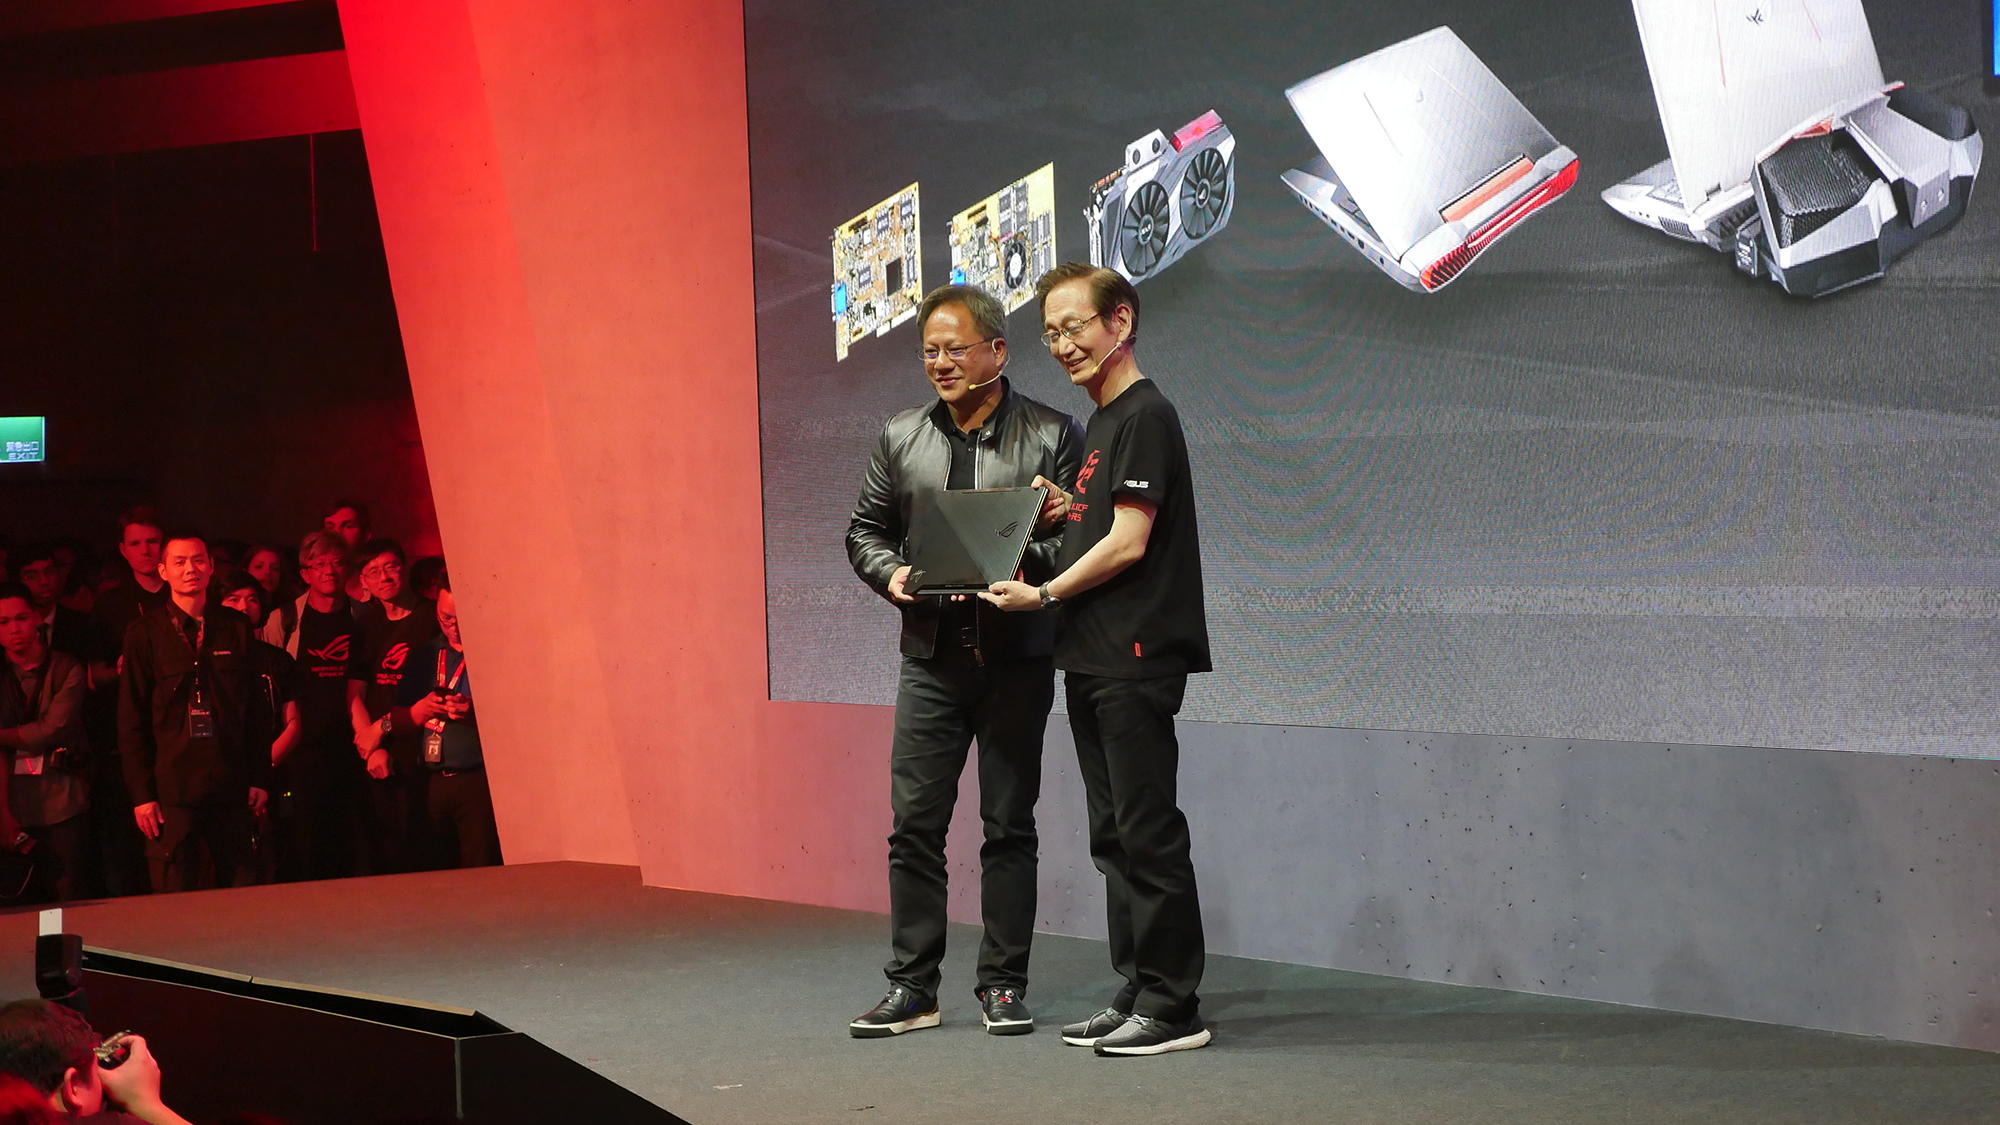 Jonney-presents-Jensen-Huang-of-NVIDIA-an-ROG-Zephyrus-d